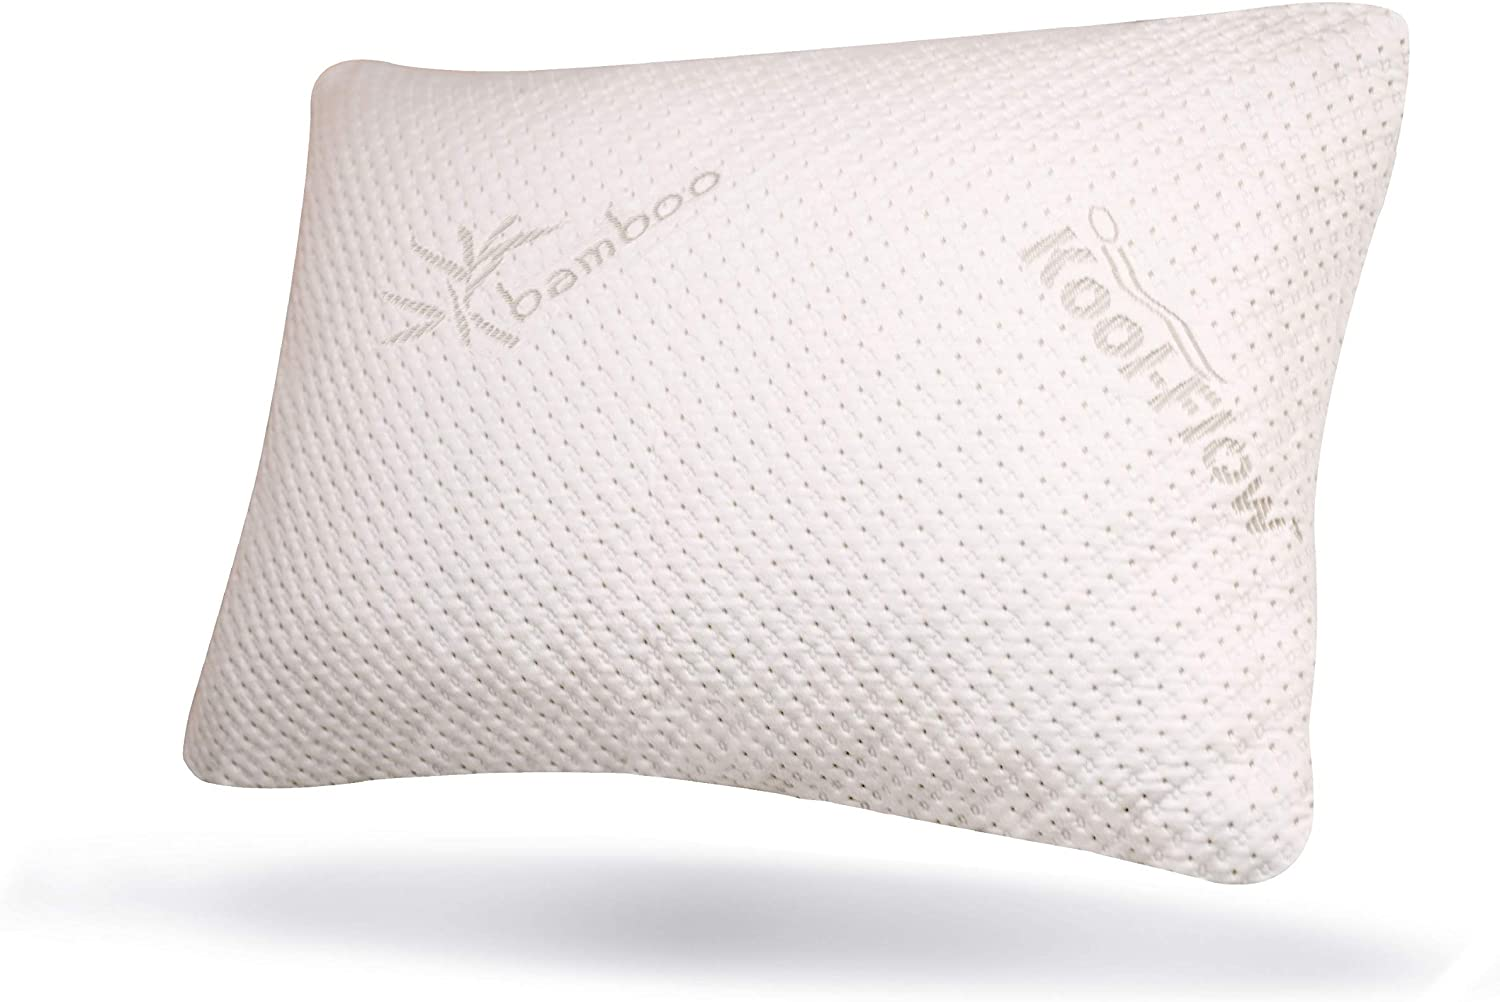 Start your morning pain-free by sleeping on one of these neck pain relief pillows. Each one offers you extreme comfort and relief.